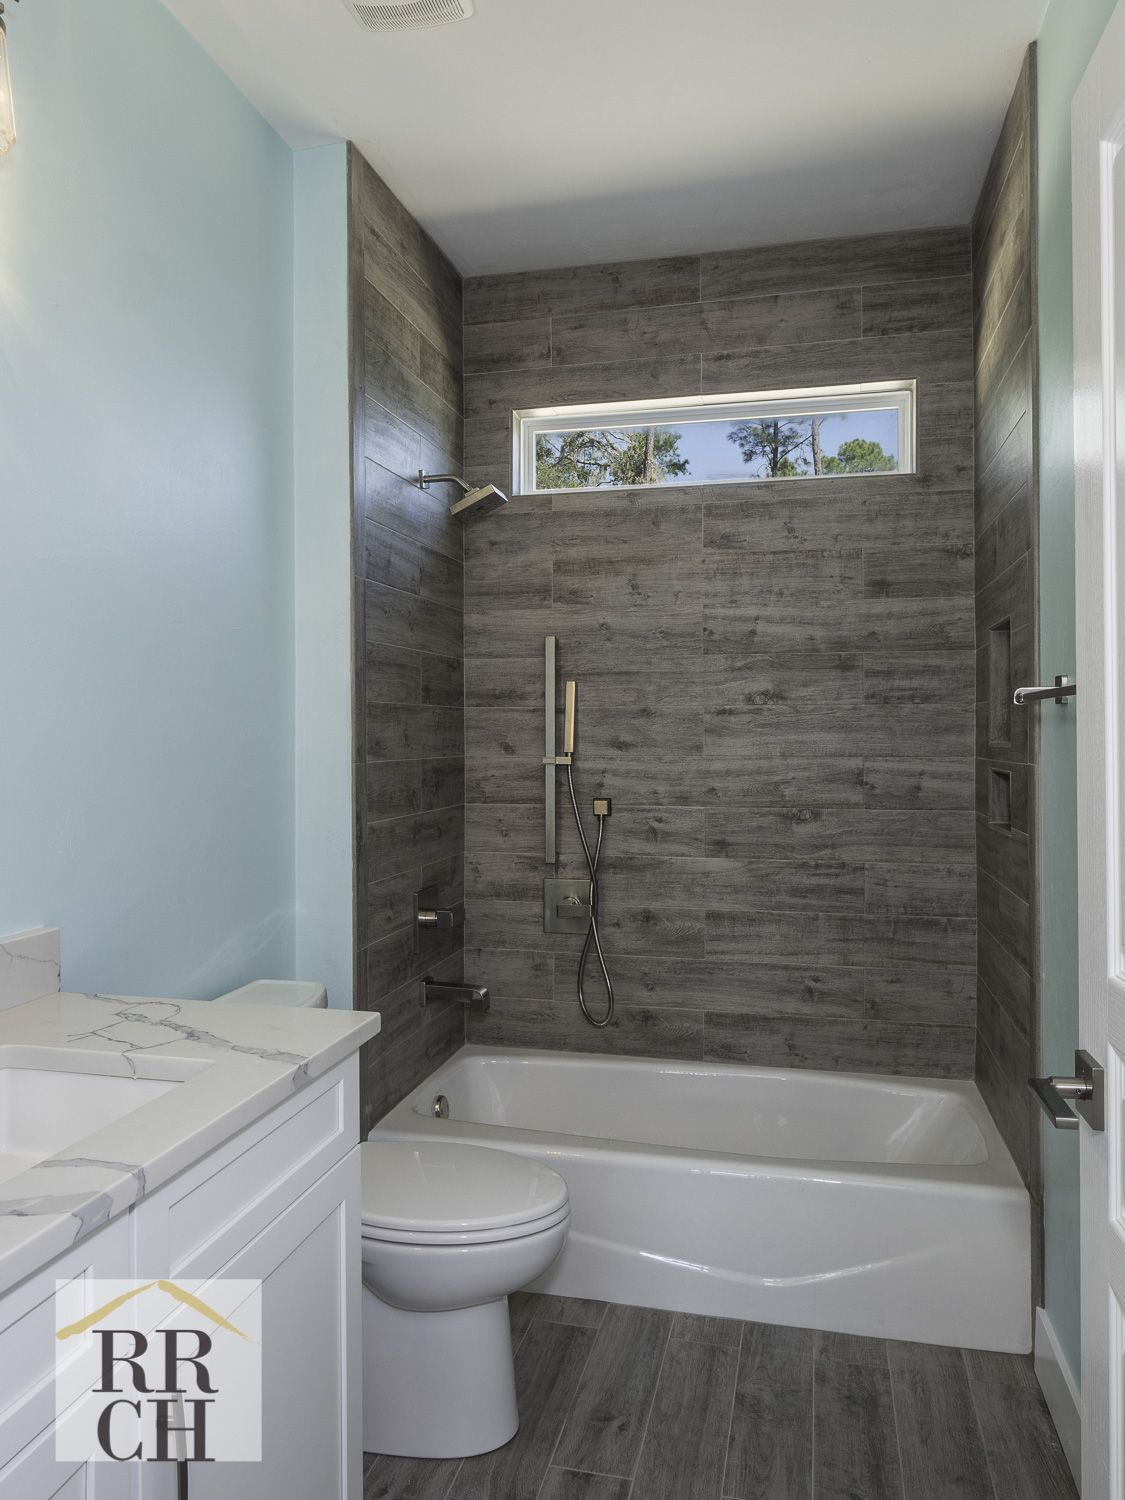 Cucina Amorosa Warehouse Import Shower Walls In American Olean Creek Wood Tile In Ash River Color